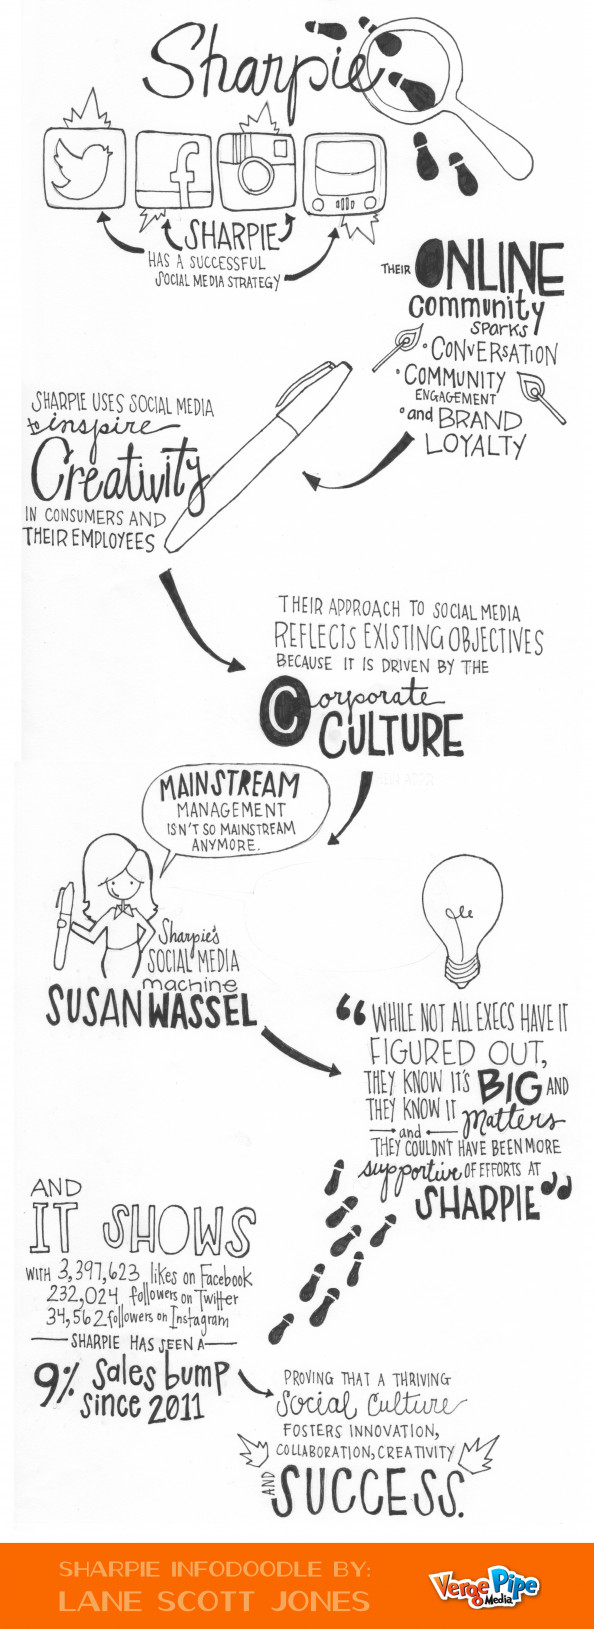 Sharpie's Social Culture  Infographic